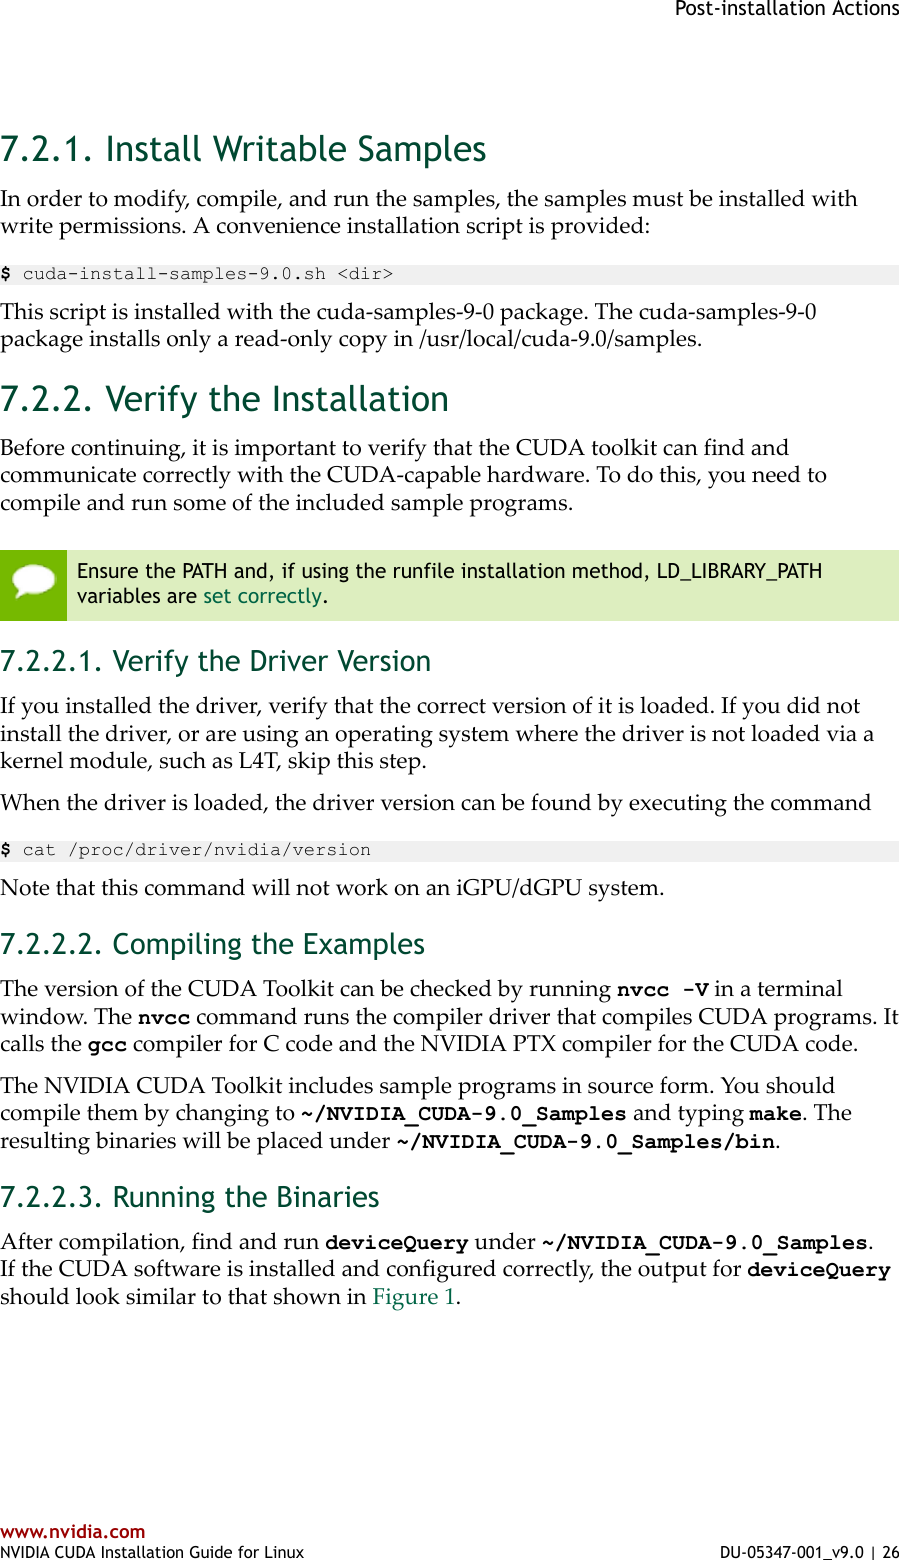 NVIDIA CUDA Installation Guide For Linux